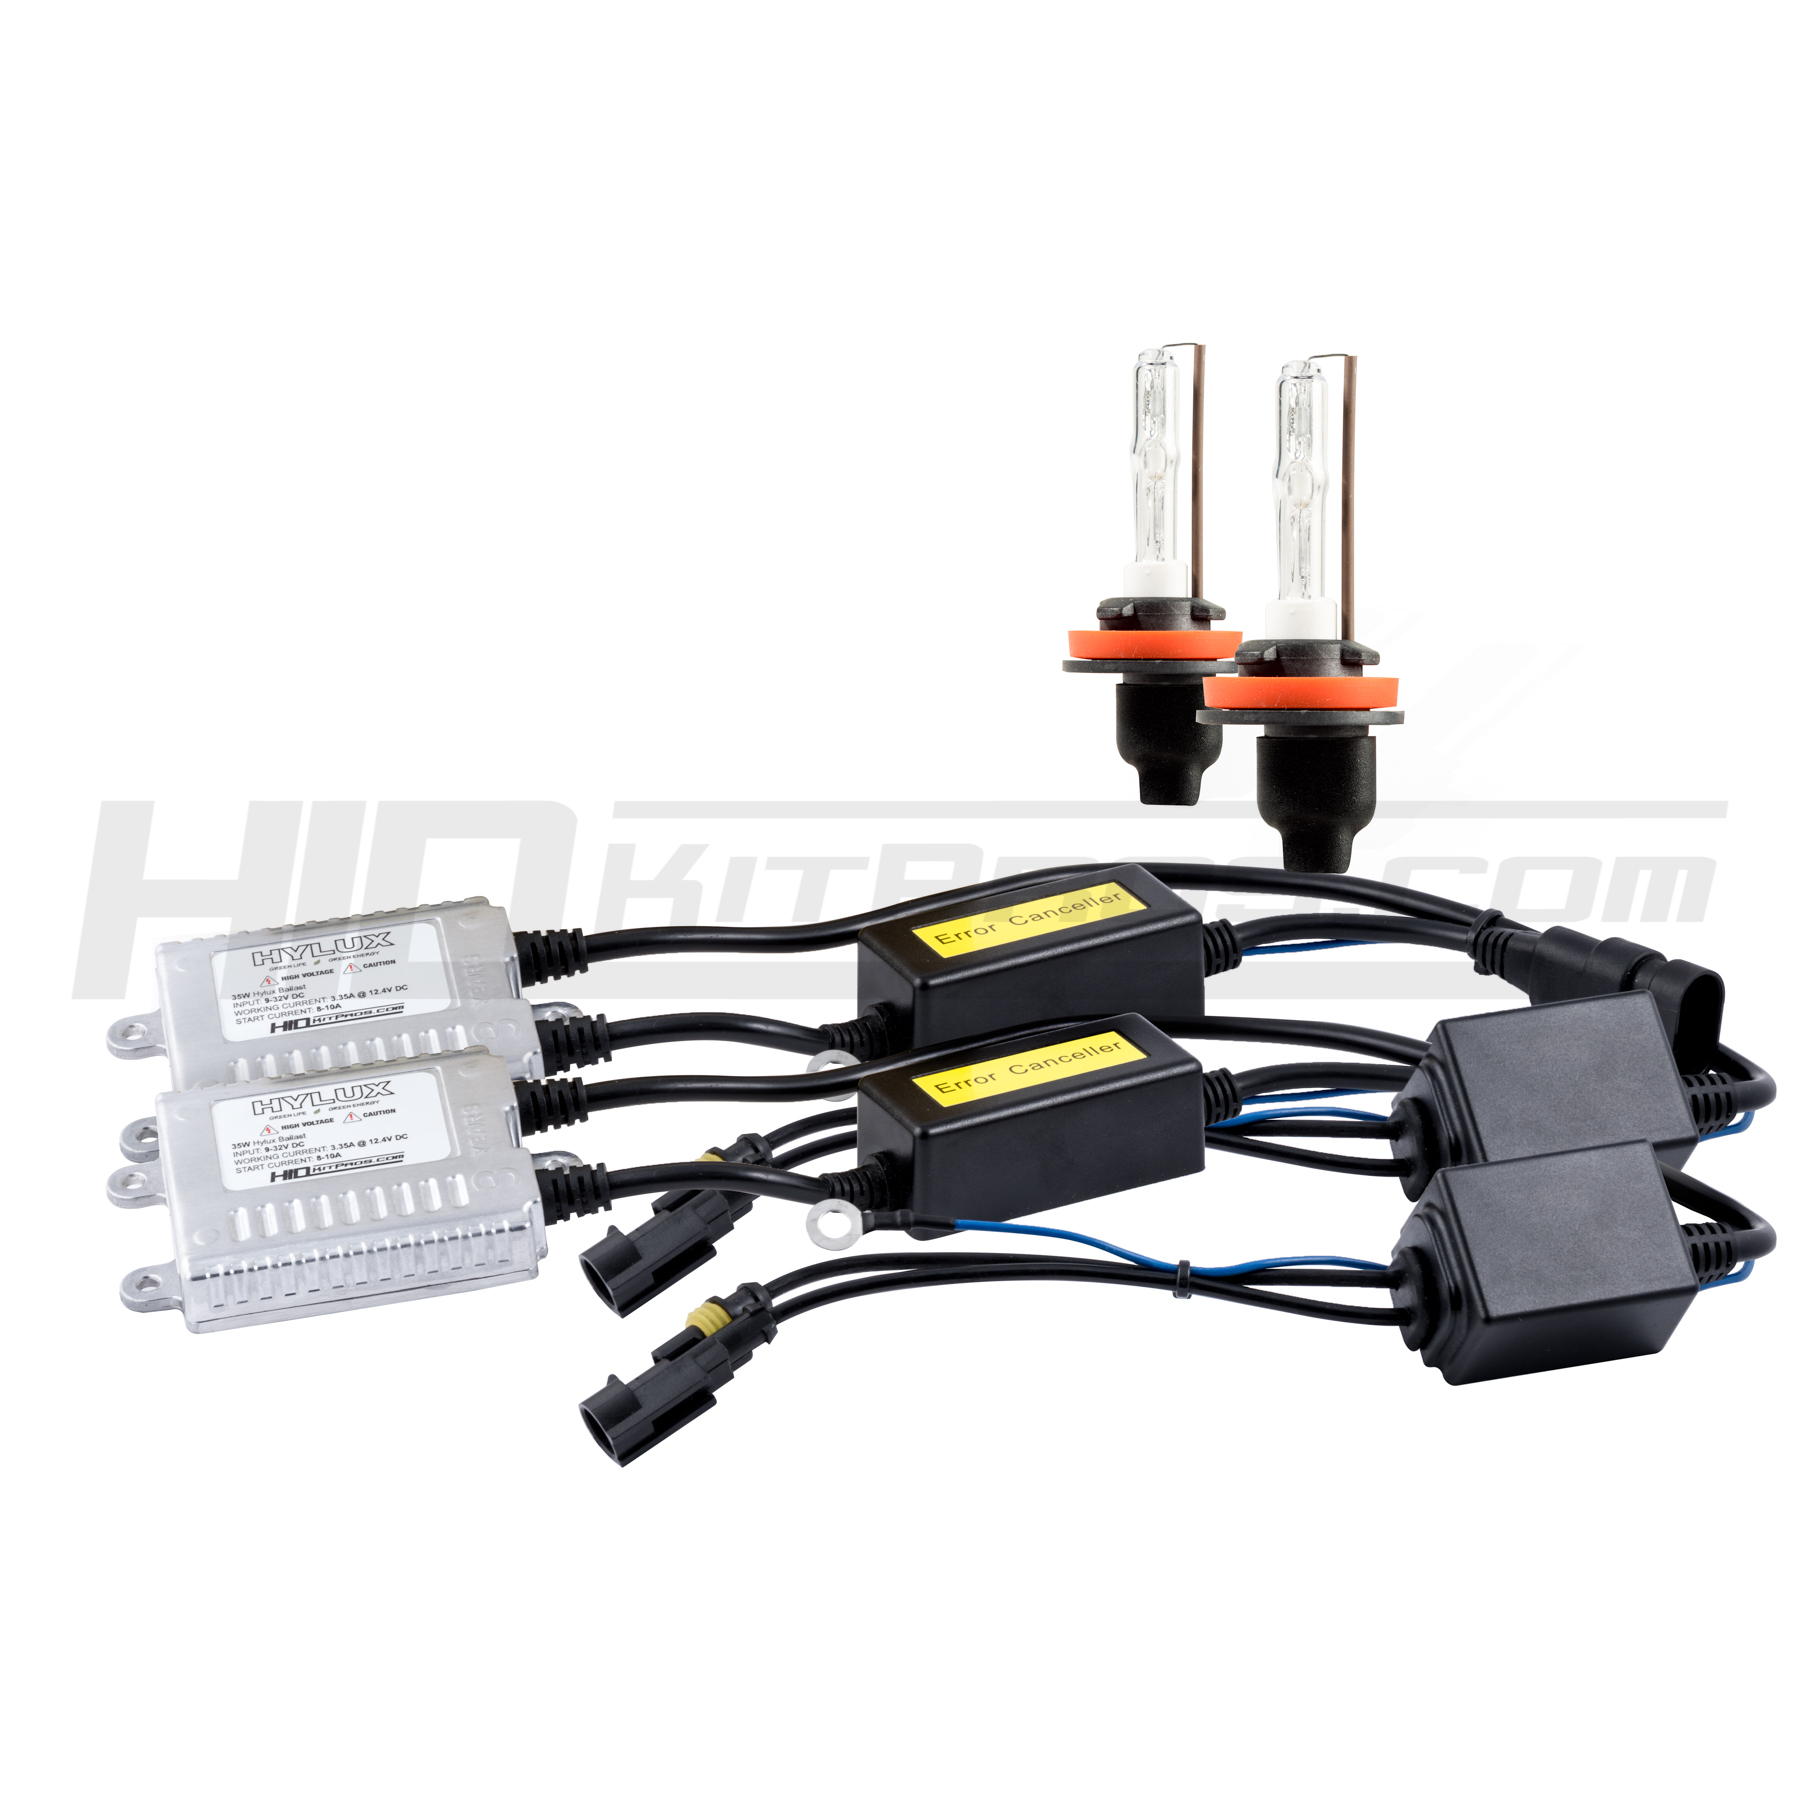 medium resolution of 2006 2016 ford fusion fog light hid conversion kit hid kit pros 2014 ford fusion fog light kit also ford f 150 trailer wiring harness